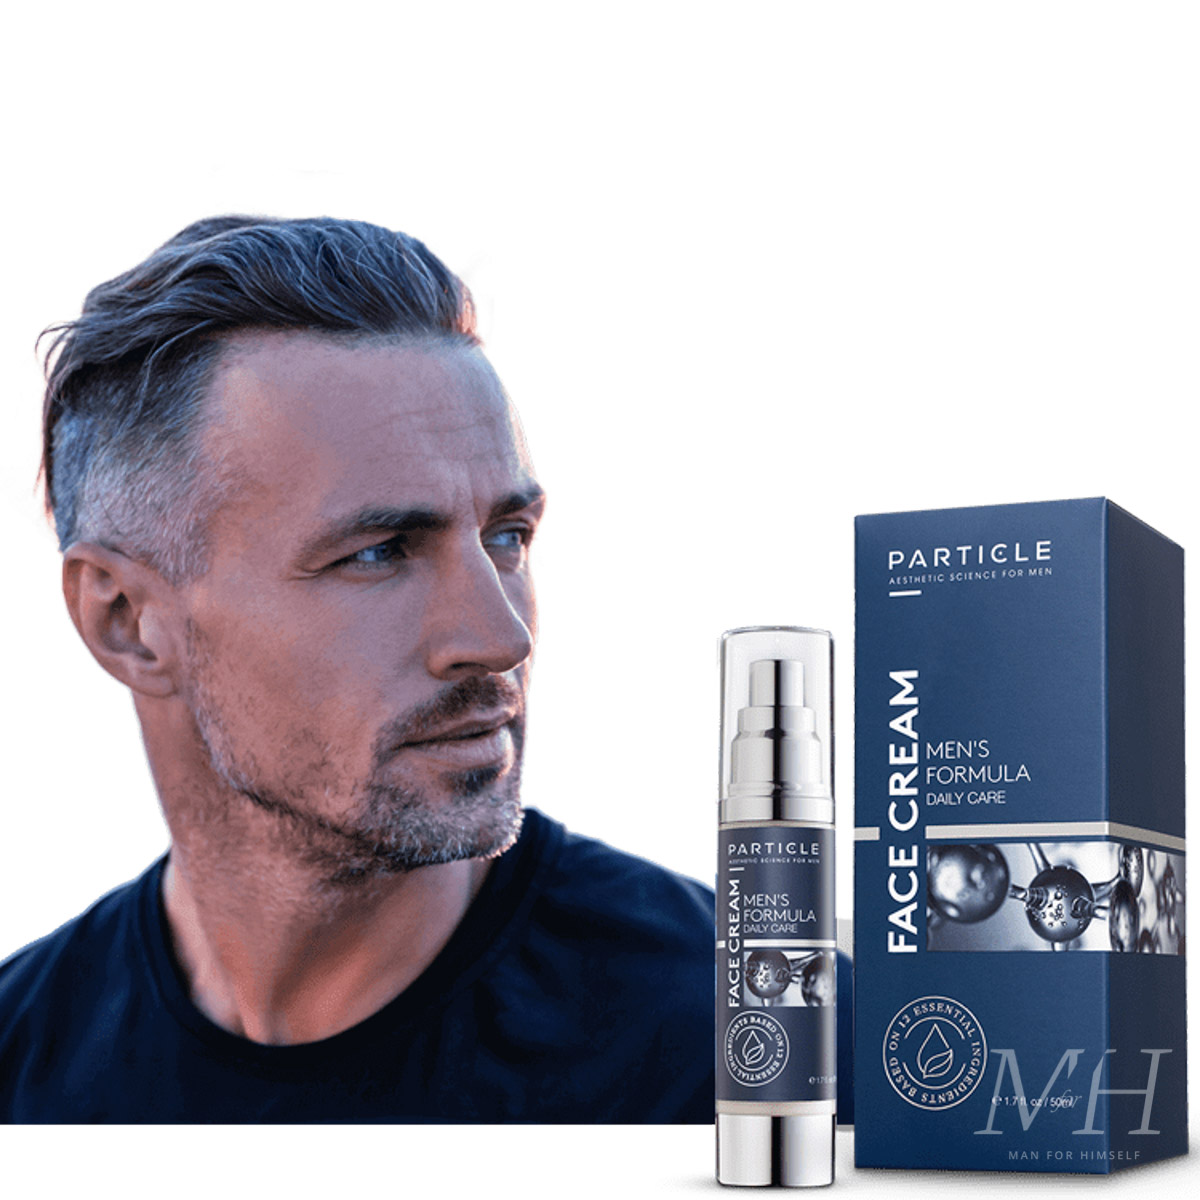 particle-skincare-for-men-advertorial-man-for-himself-3